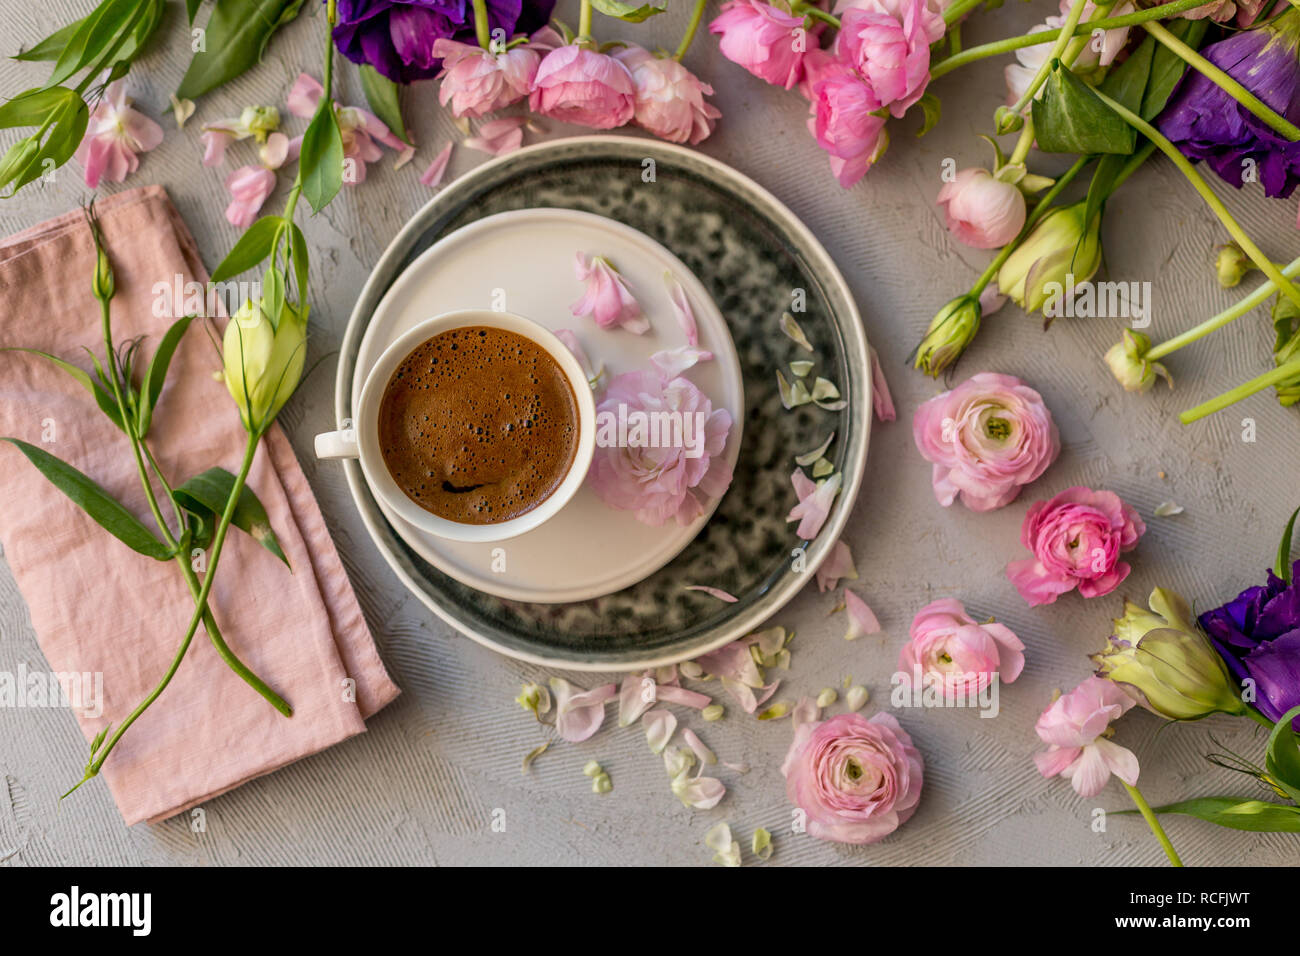 Upper view shot of a cup of coffee in the middle of floral frame of pink ranunculus and purple and yellow lisianthus - Stock Image